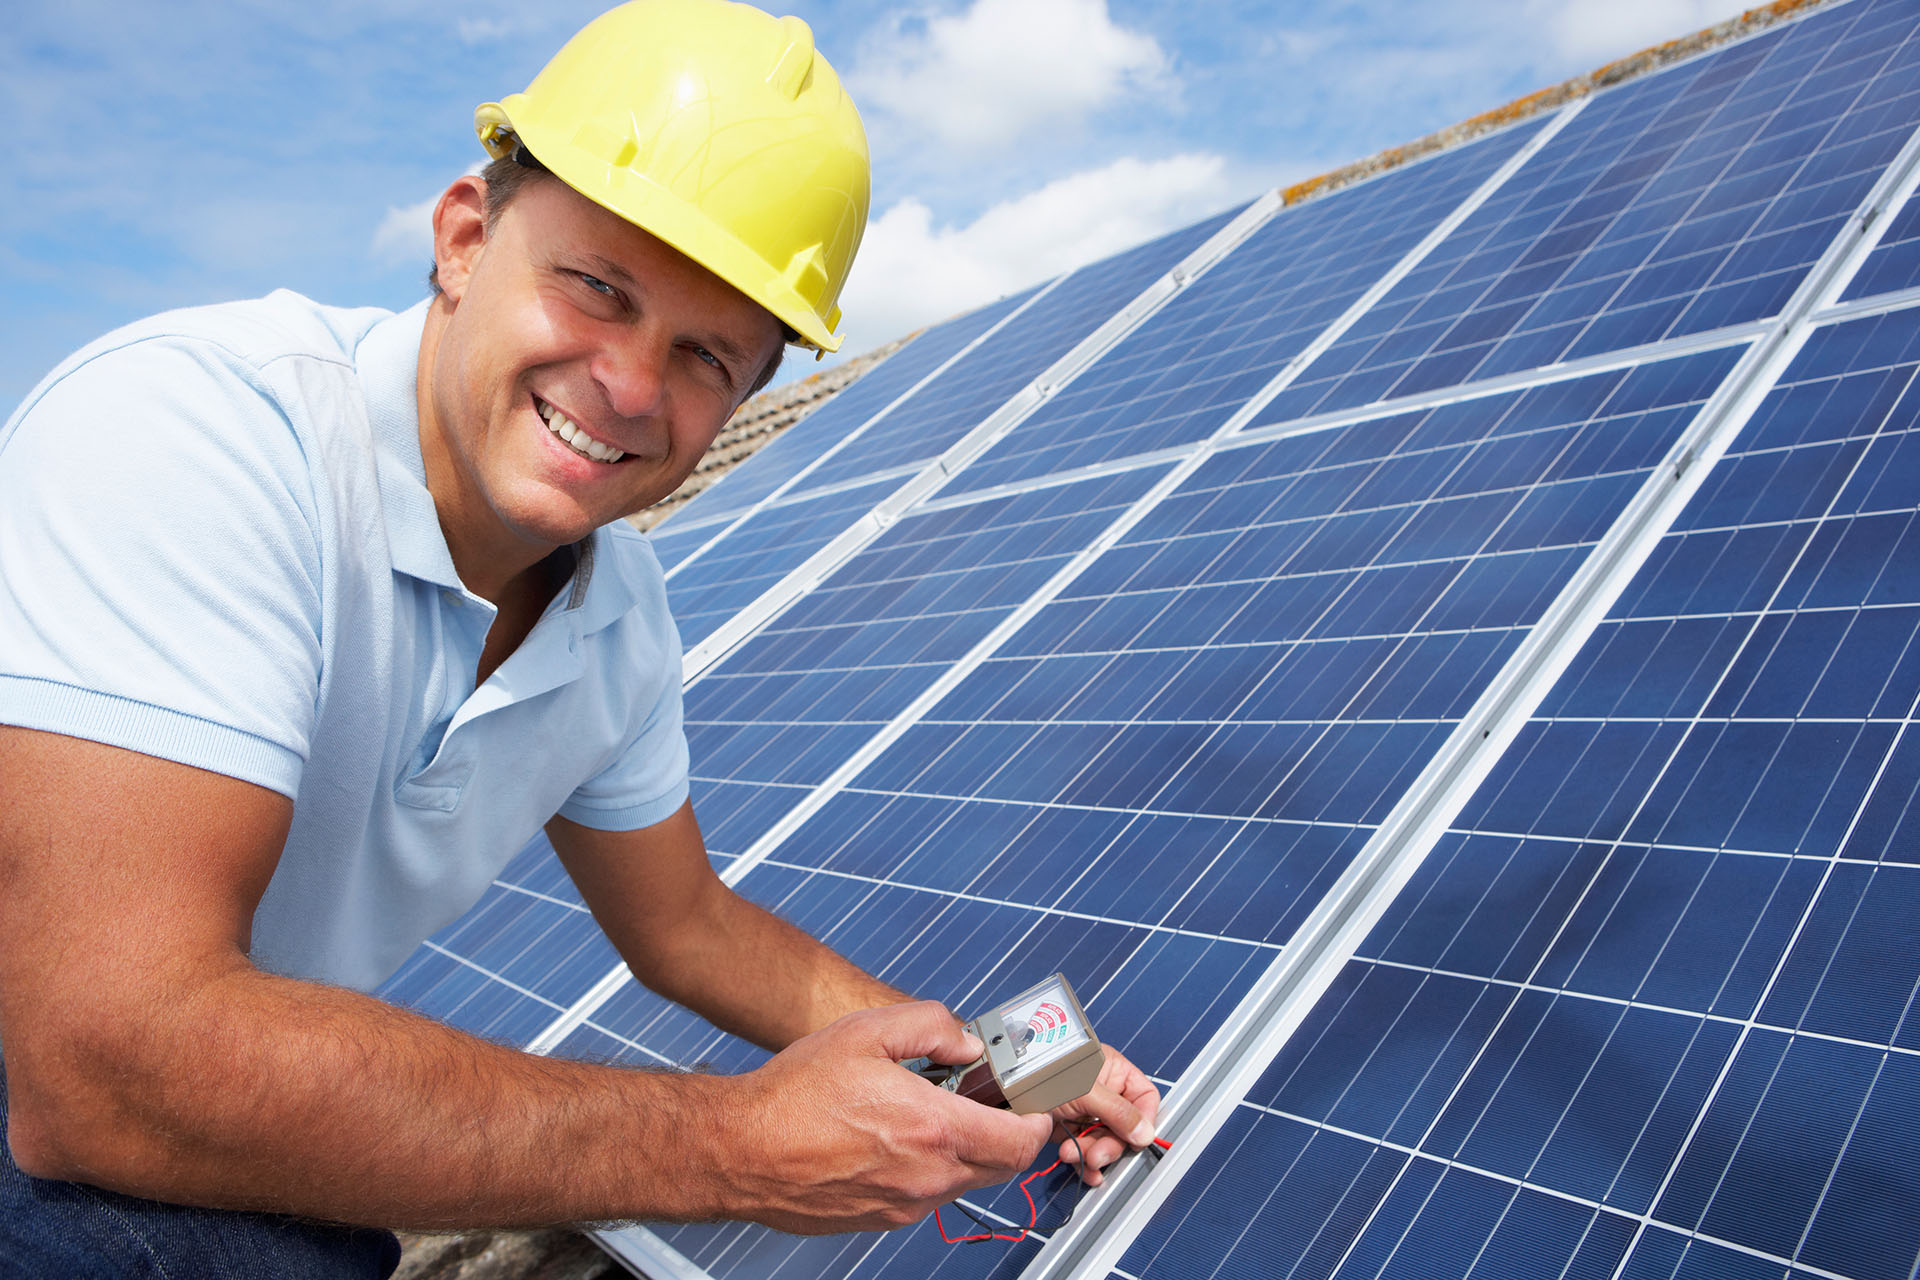 How to find Cheap Solar Panel Installers?